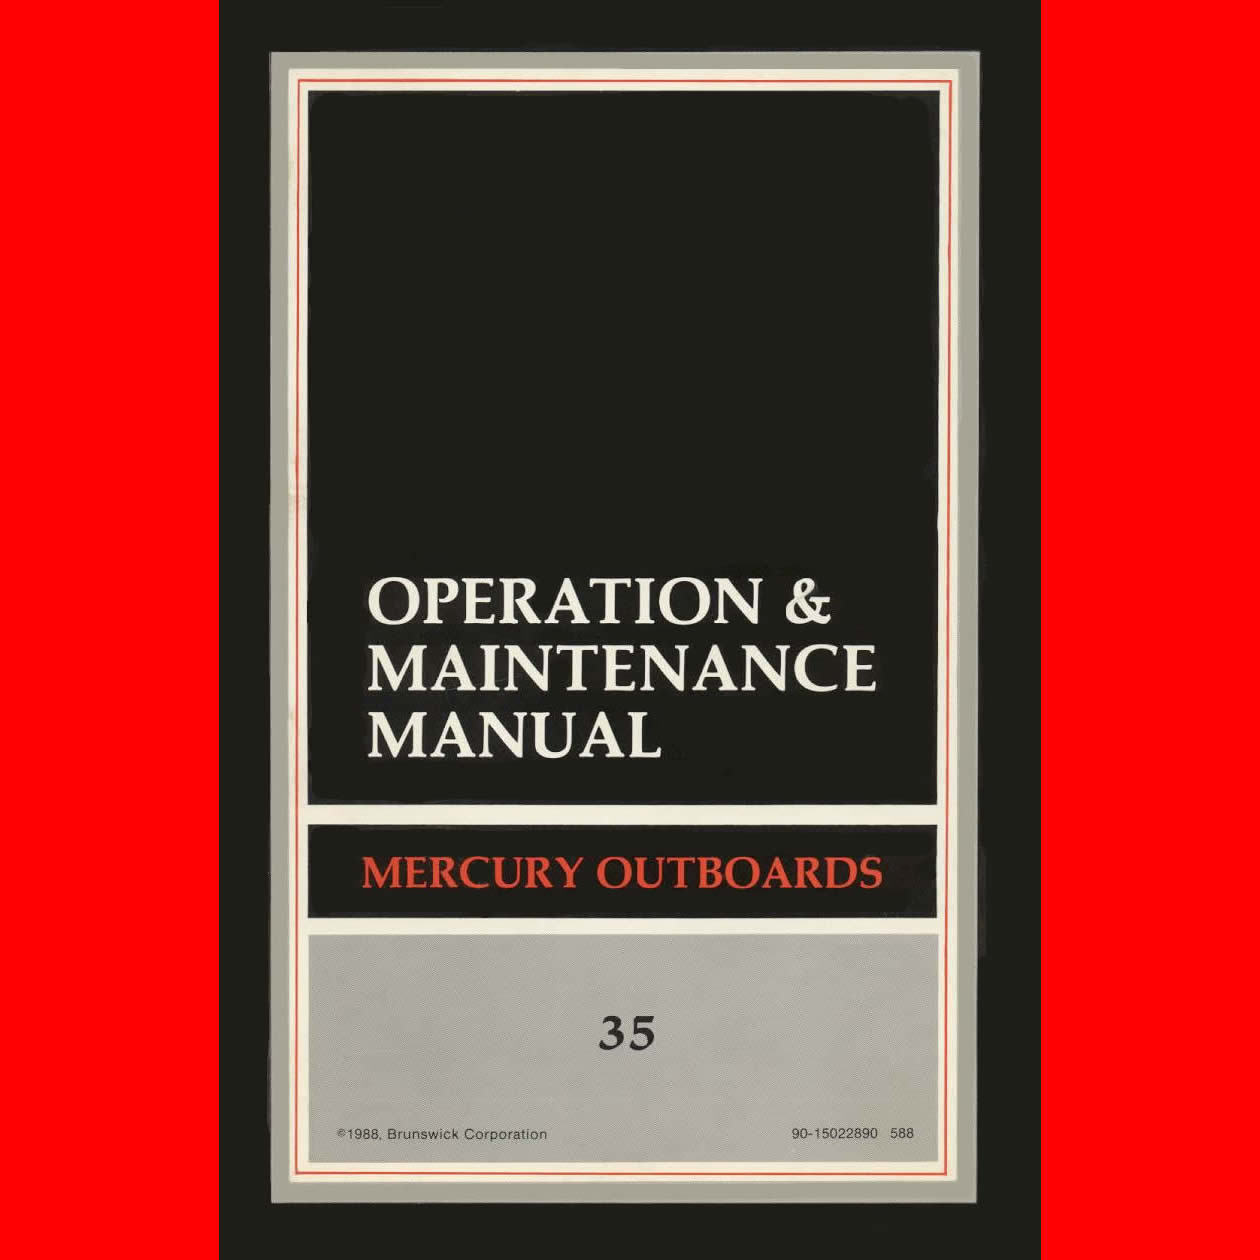 1988 MERCURY 35 HP OUTBOARD OPERATIONS & MAINT OEM MANUAL 90-15022890 PDF  EMAIL